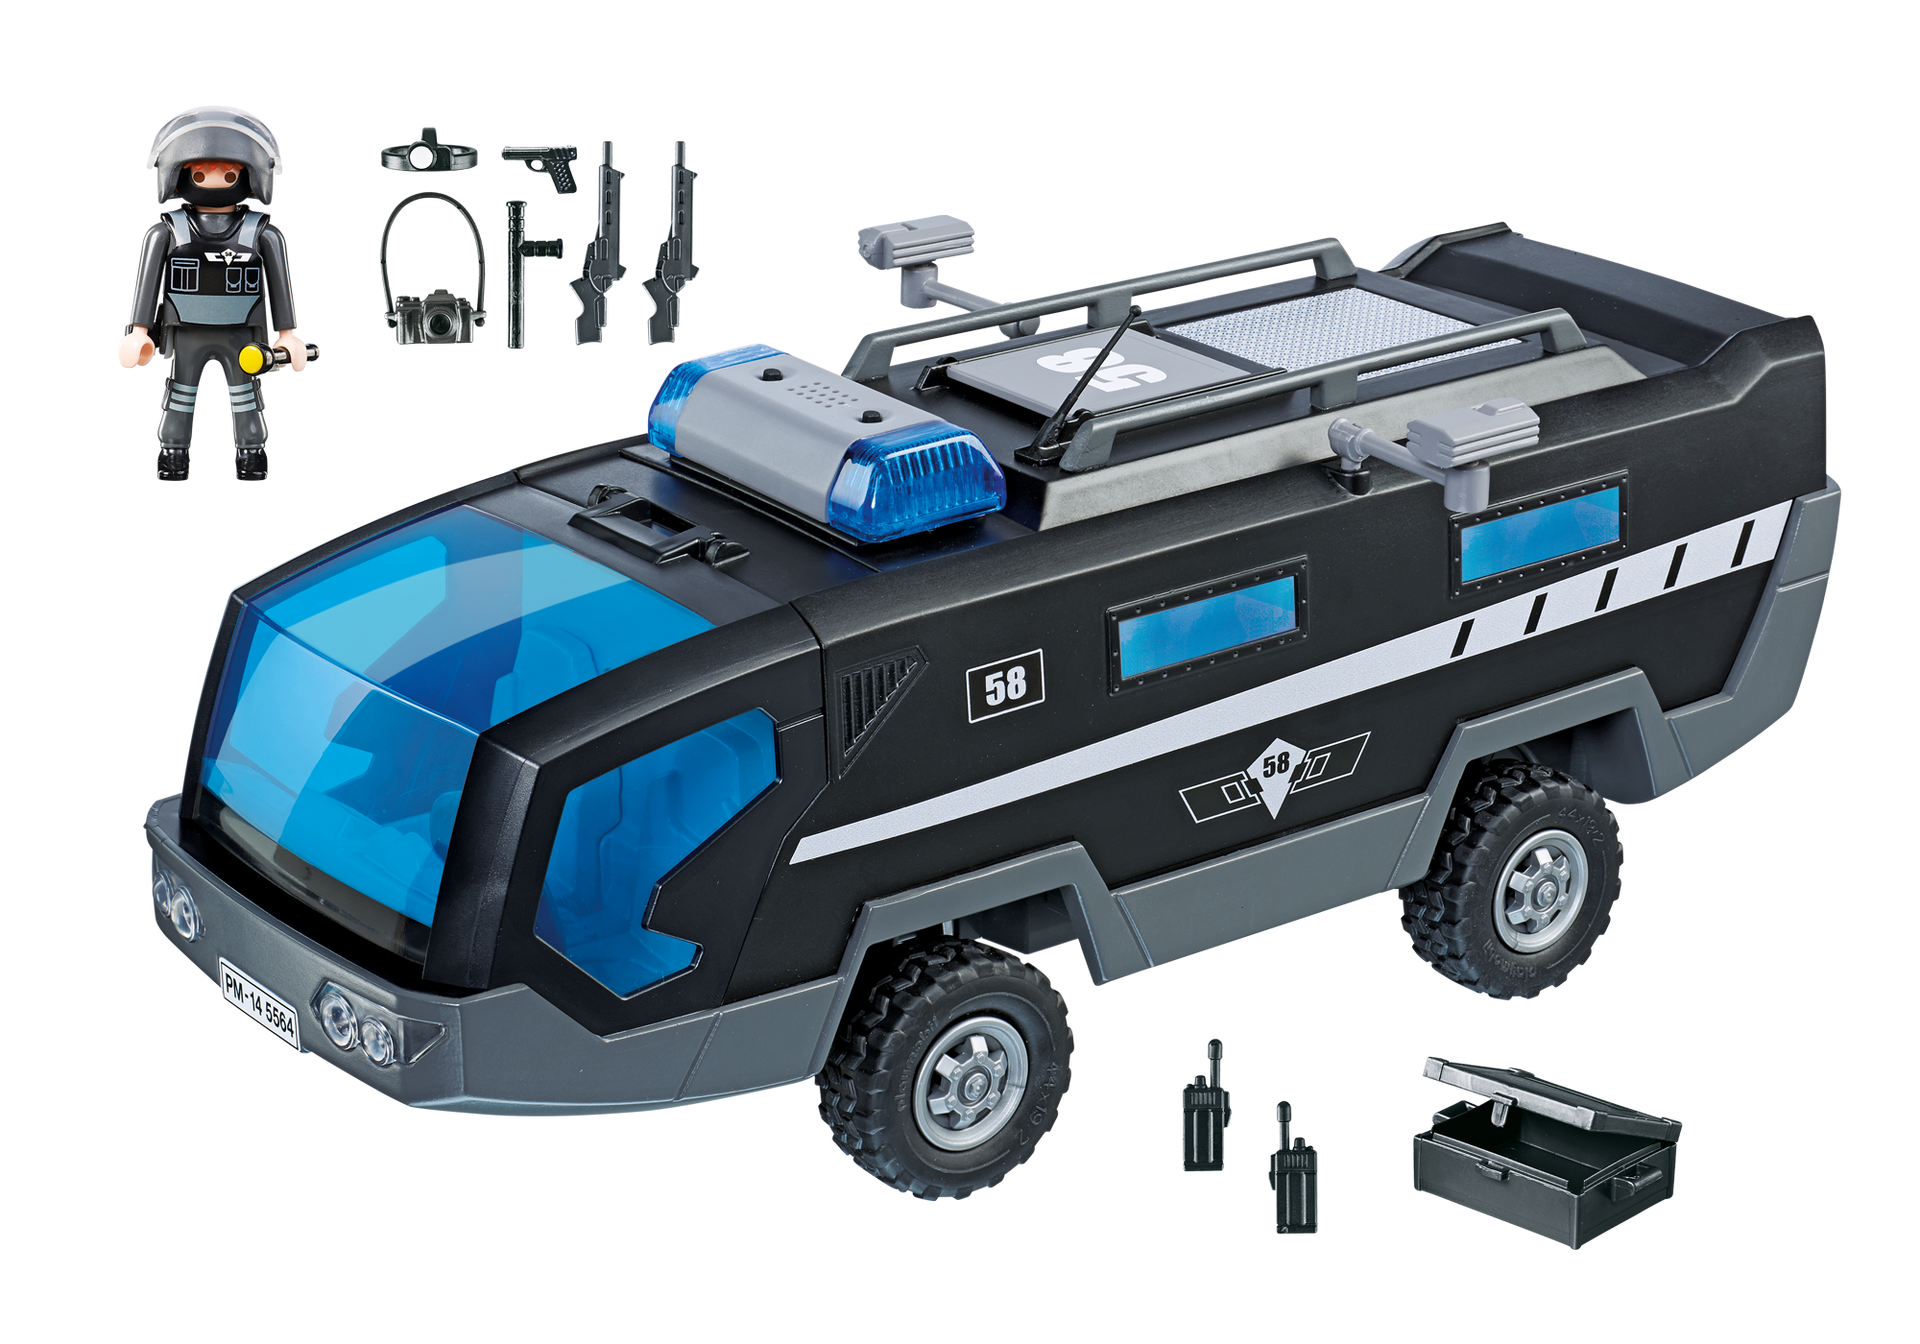 V hicule d 39 intervention des forces sp ciales 5564 playmobil france - Playmobil camion police ...